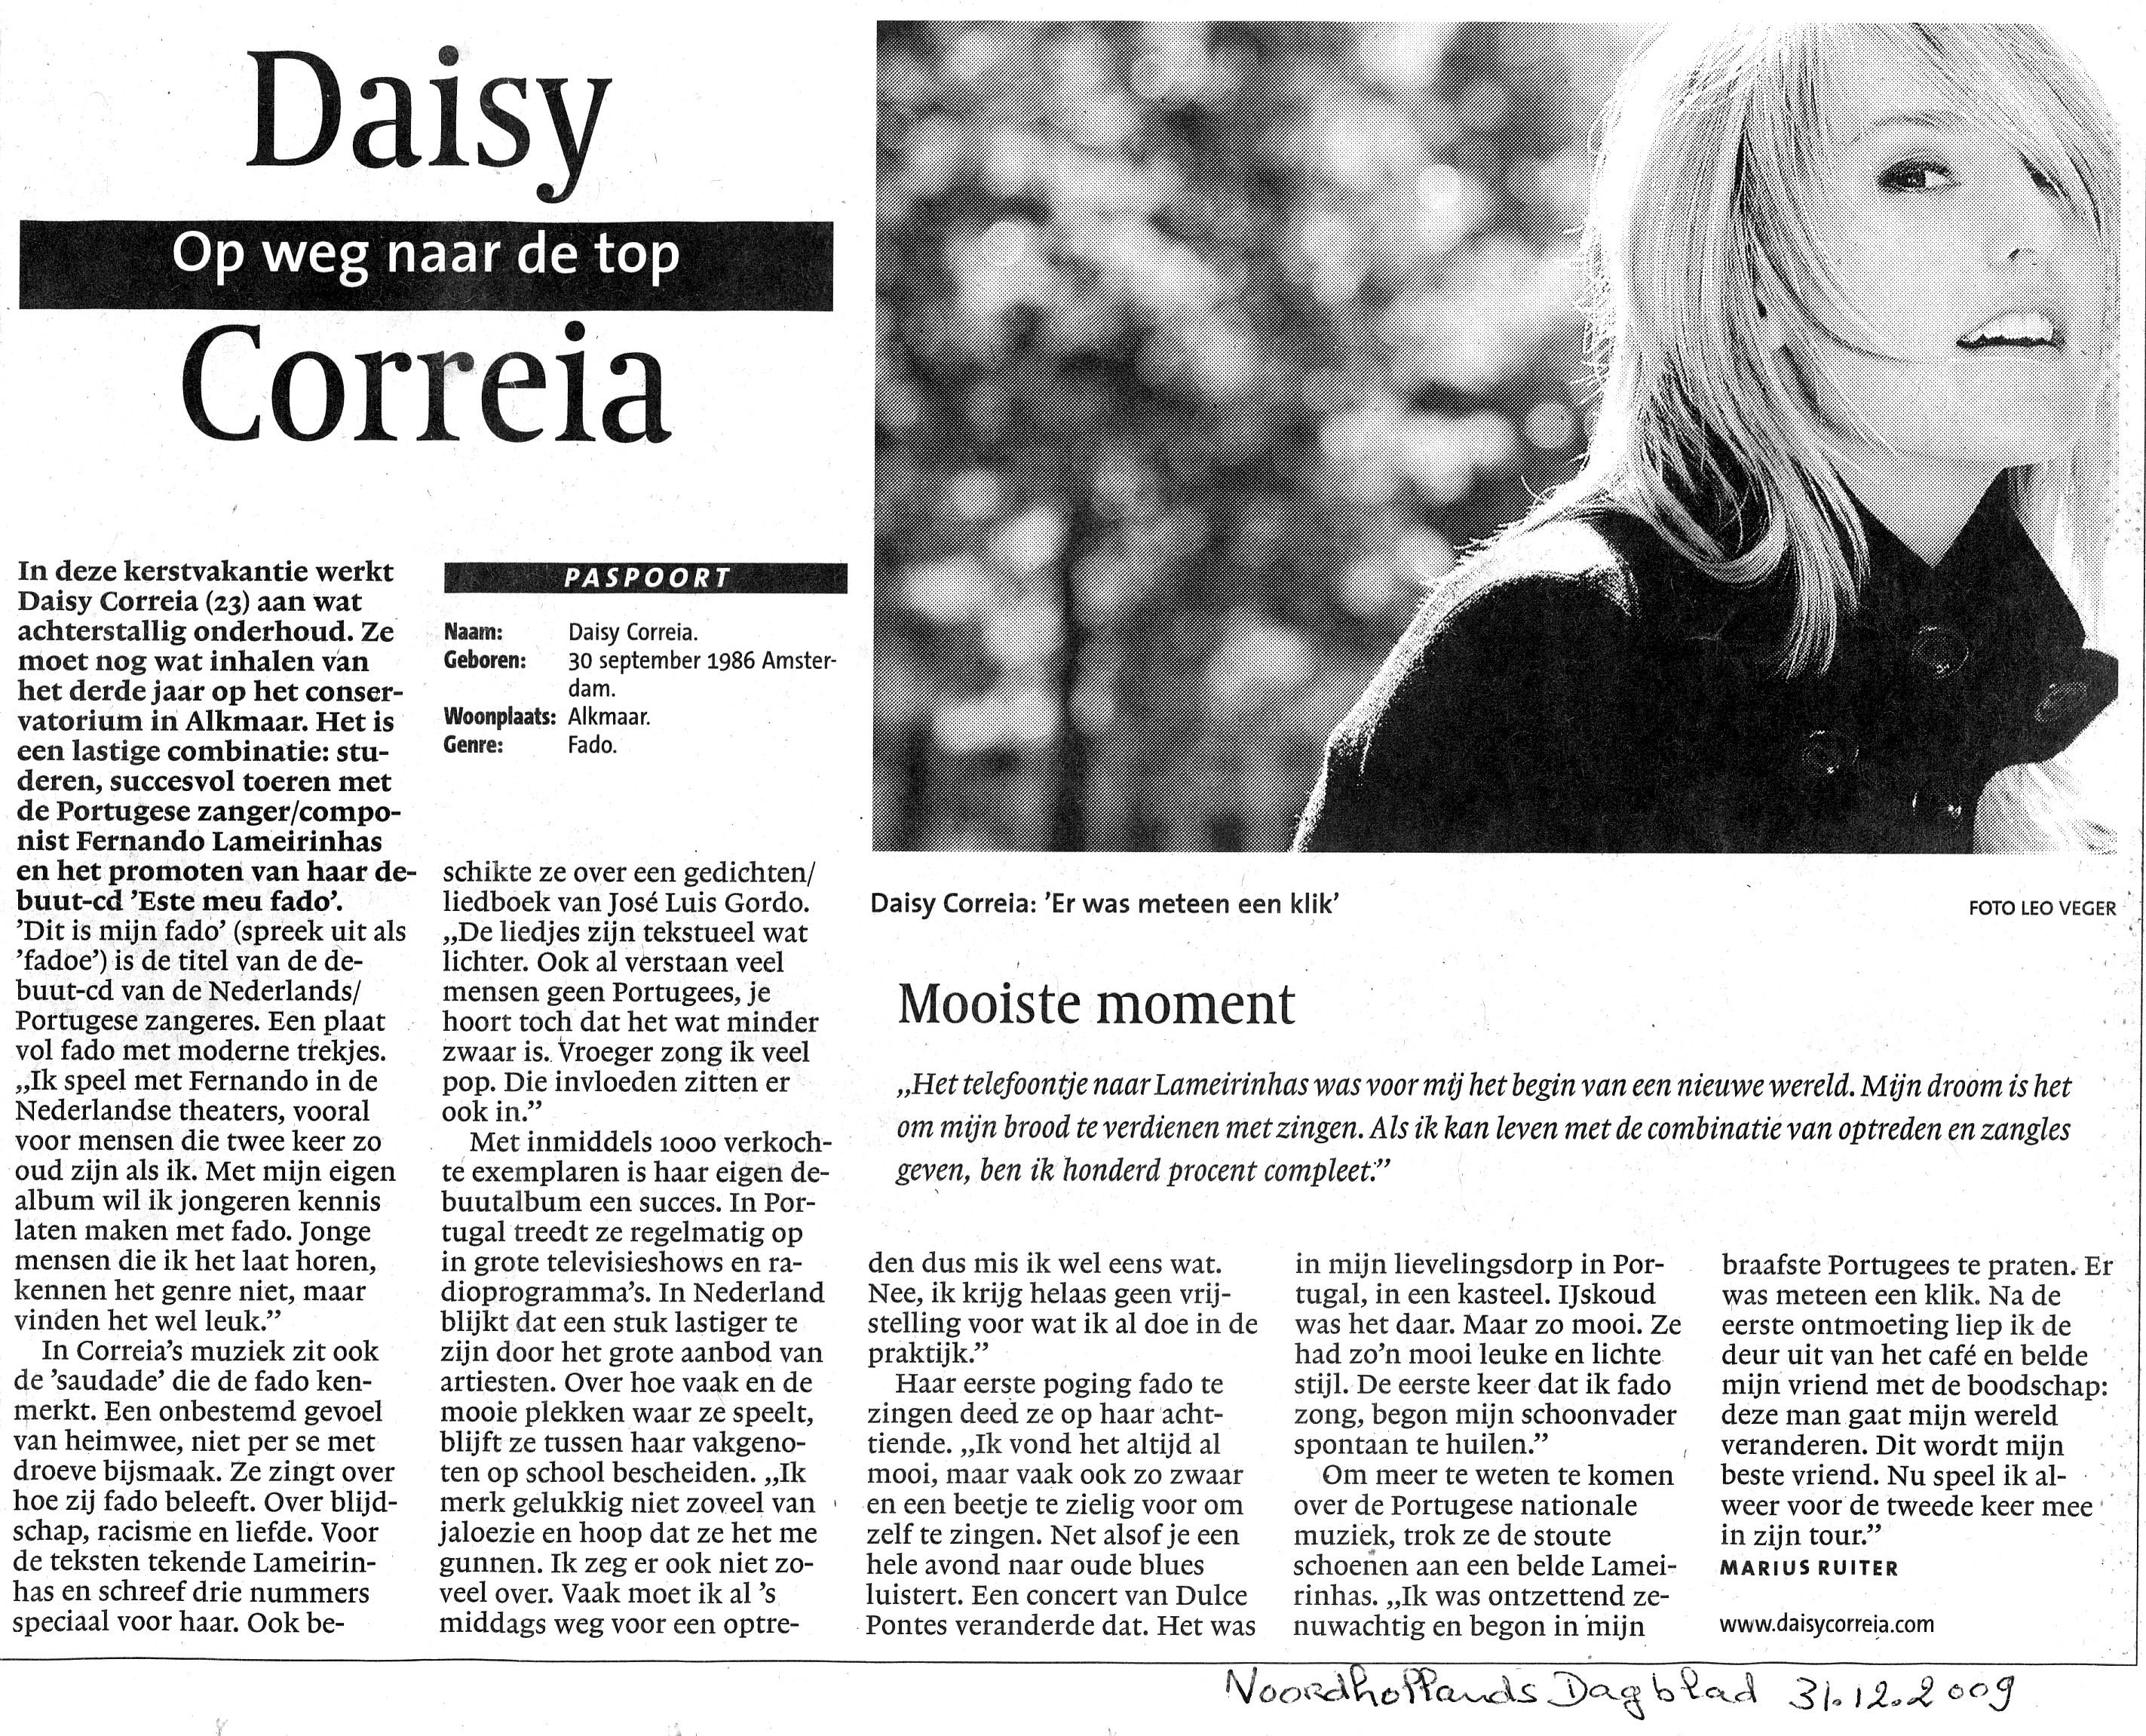 2009-12-31 Artikel over Daisy in NH Dagblad a